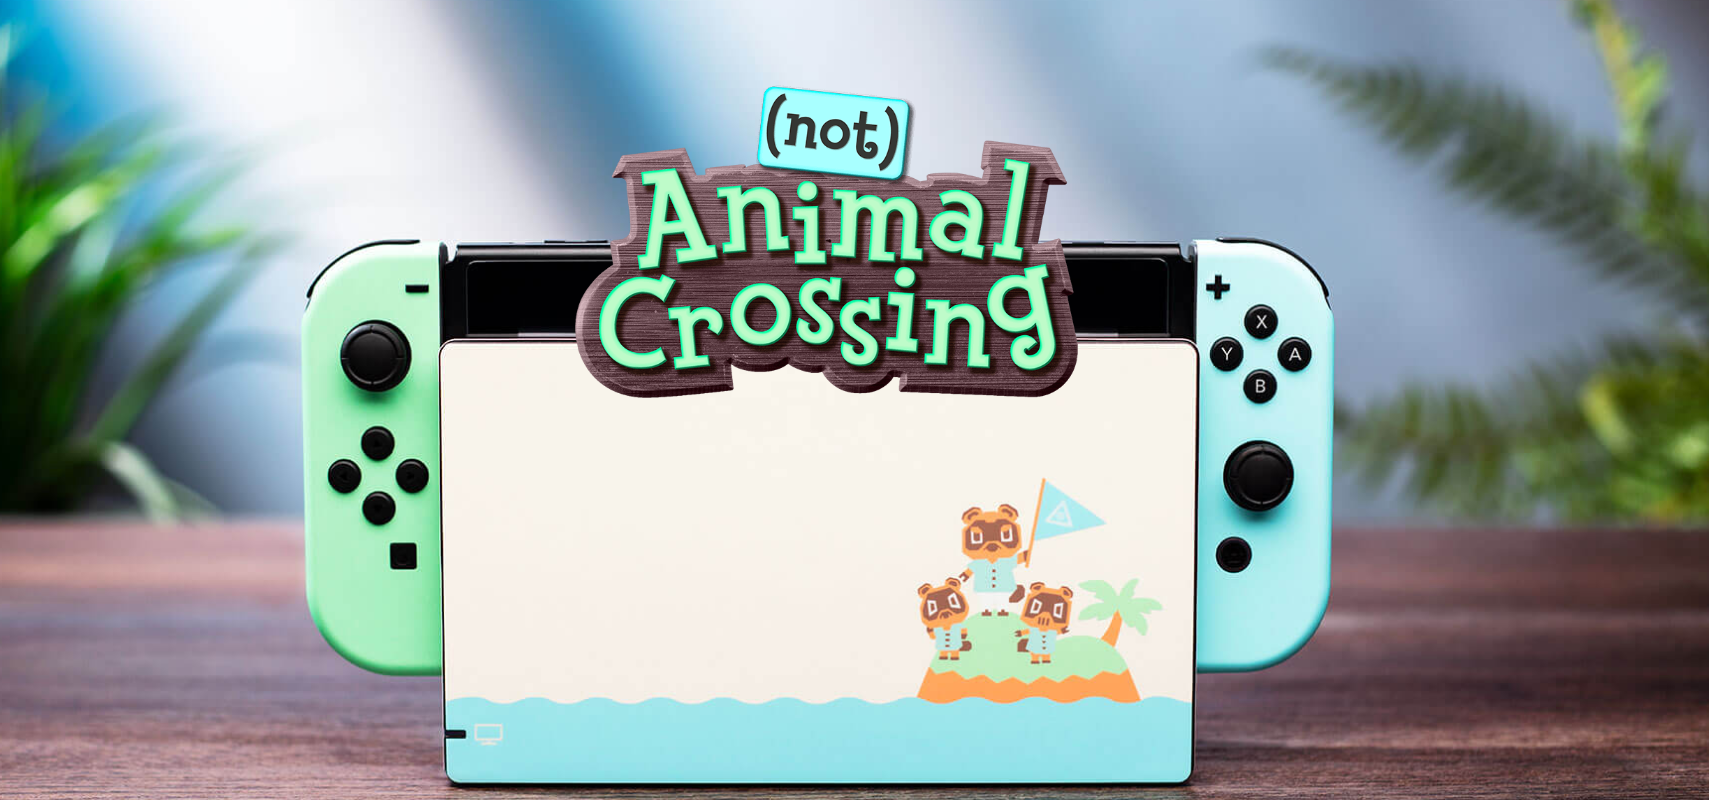 Do you want a (not) Animal Crossing Nintendo Switch?